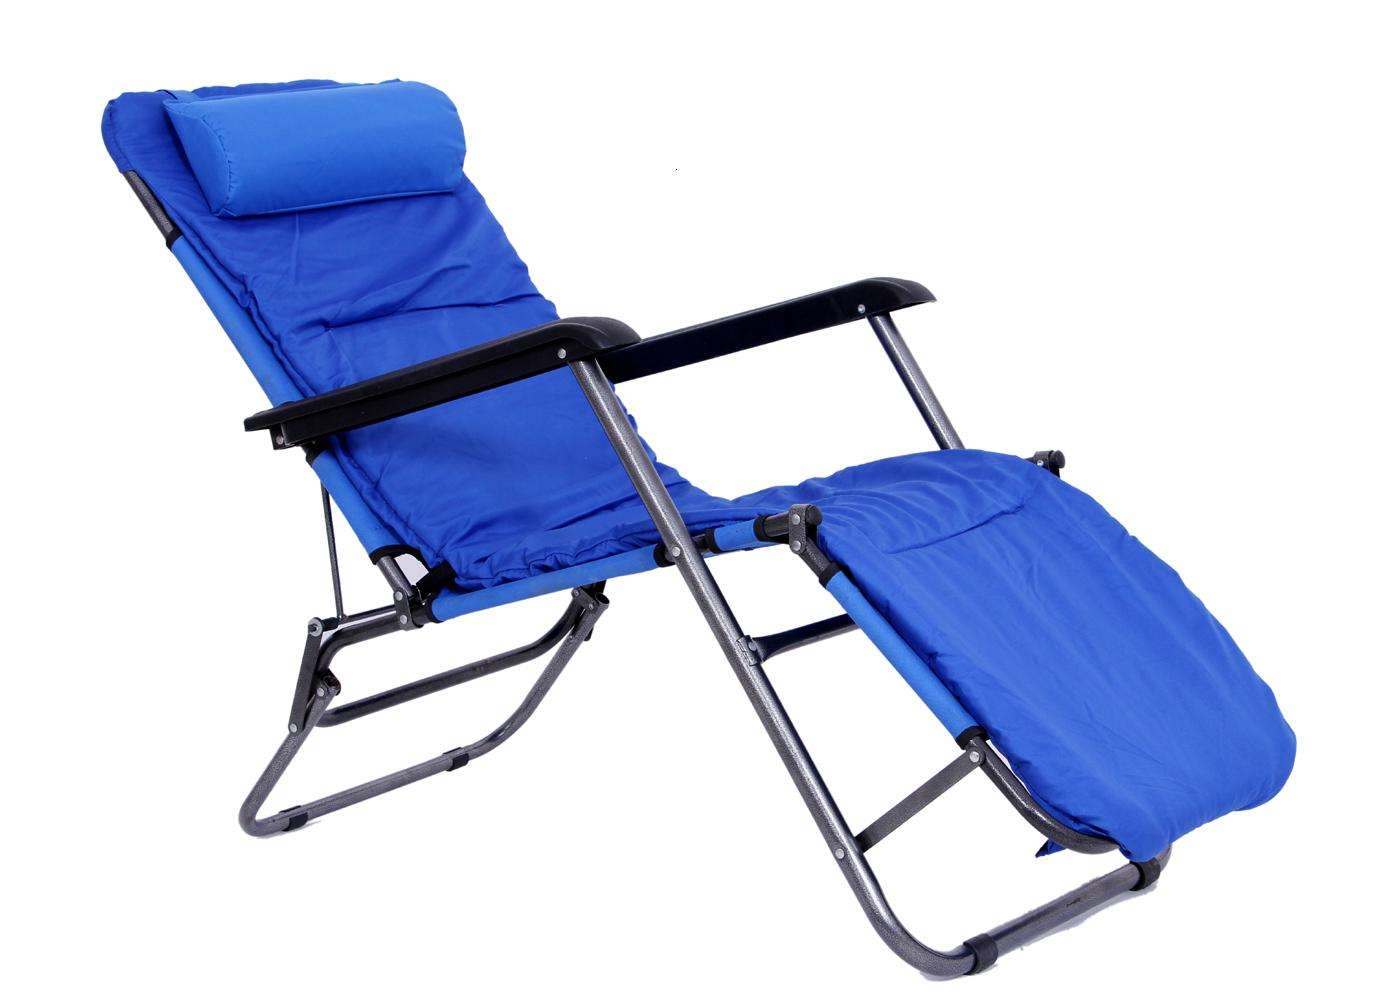 folding chair flipkart picture of a relax blue with sheet available at shopclues